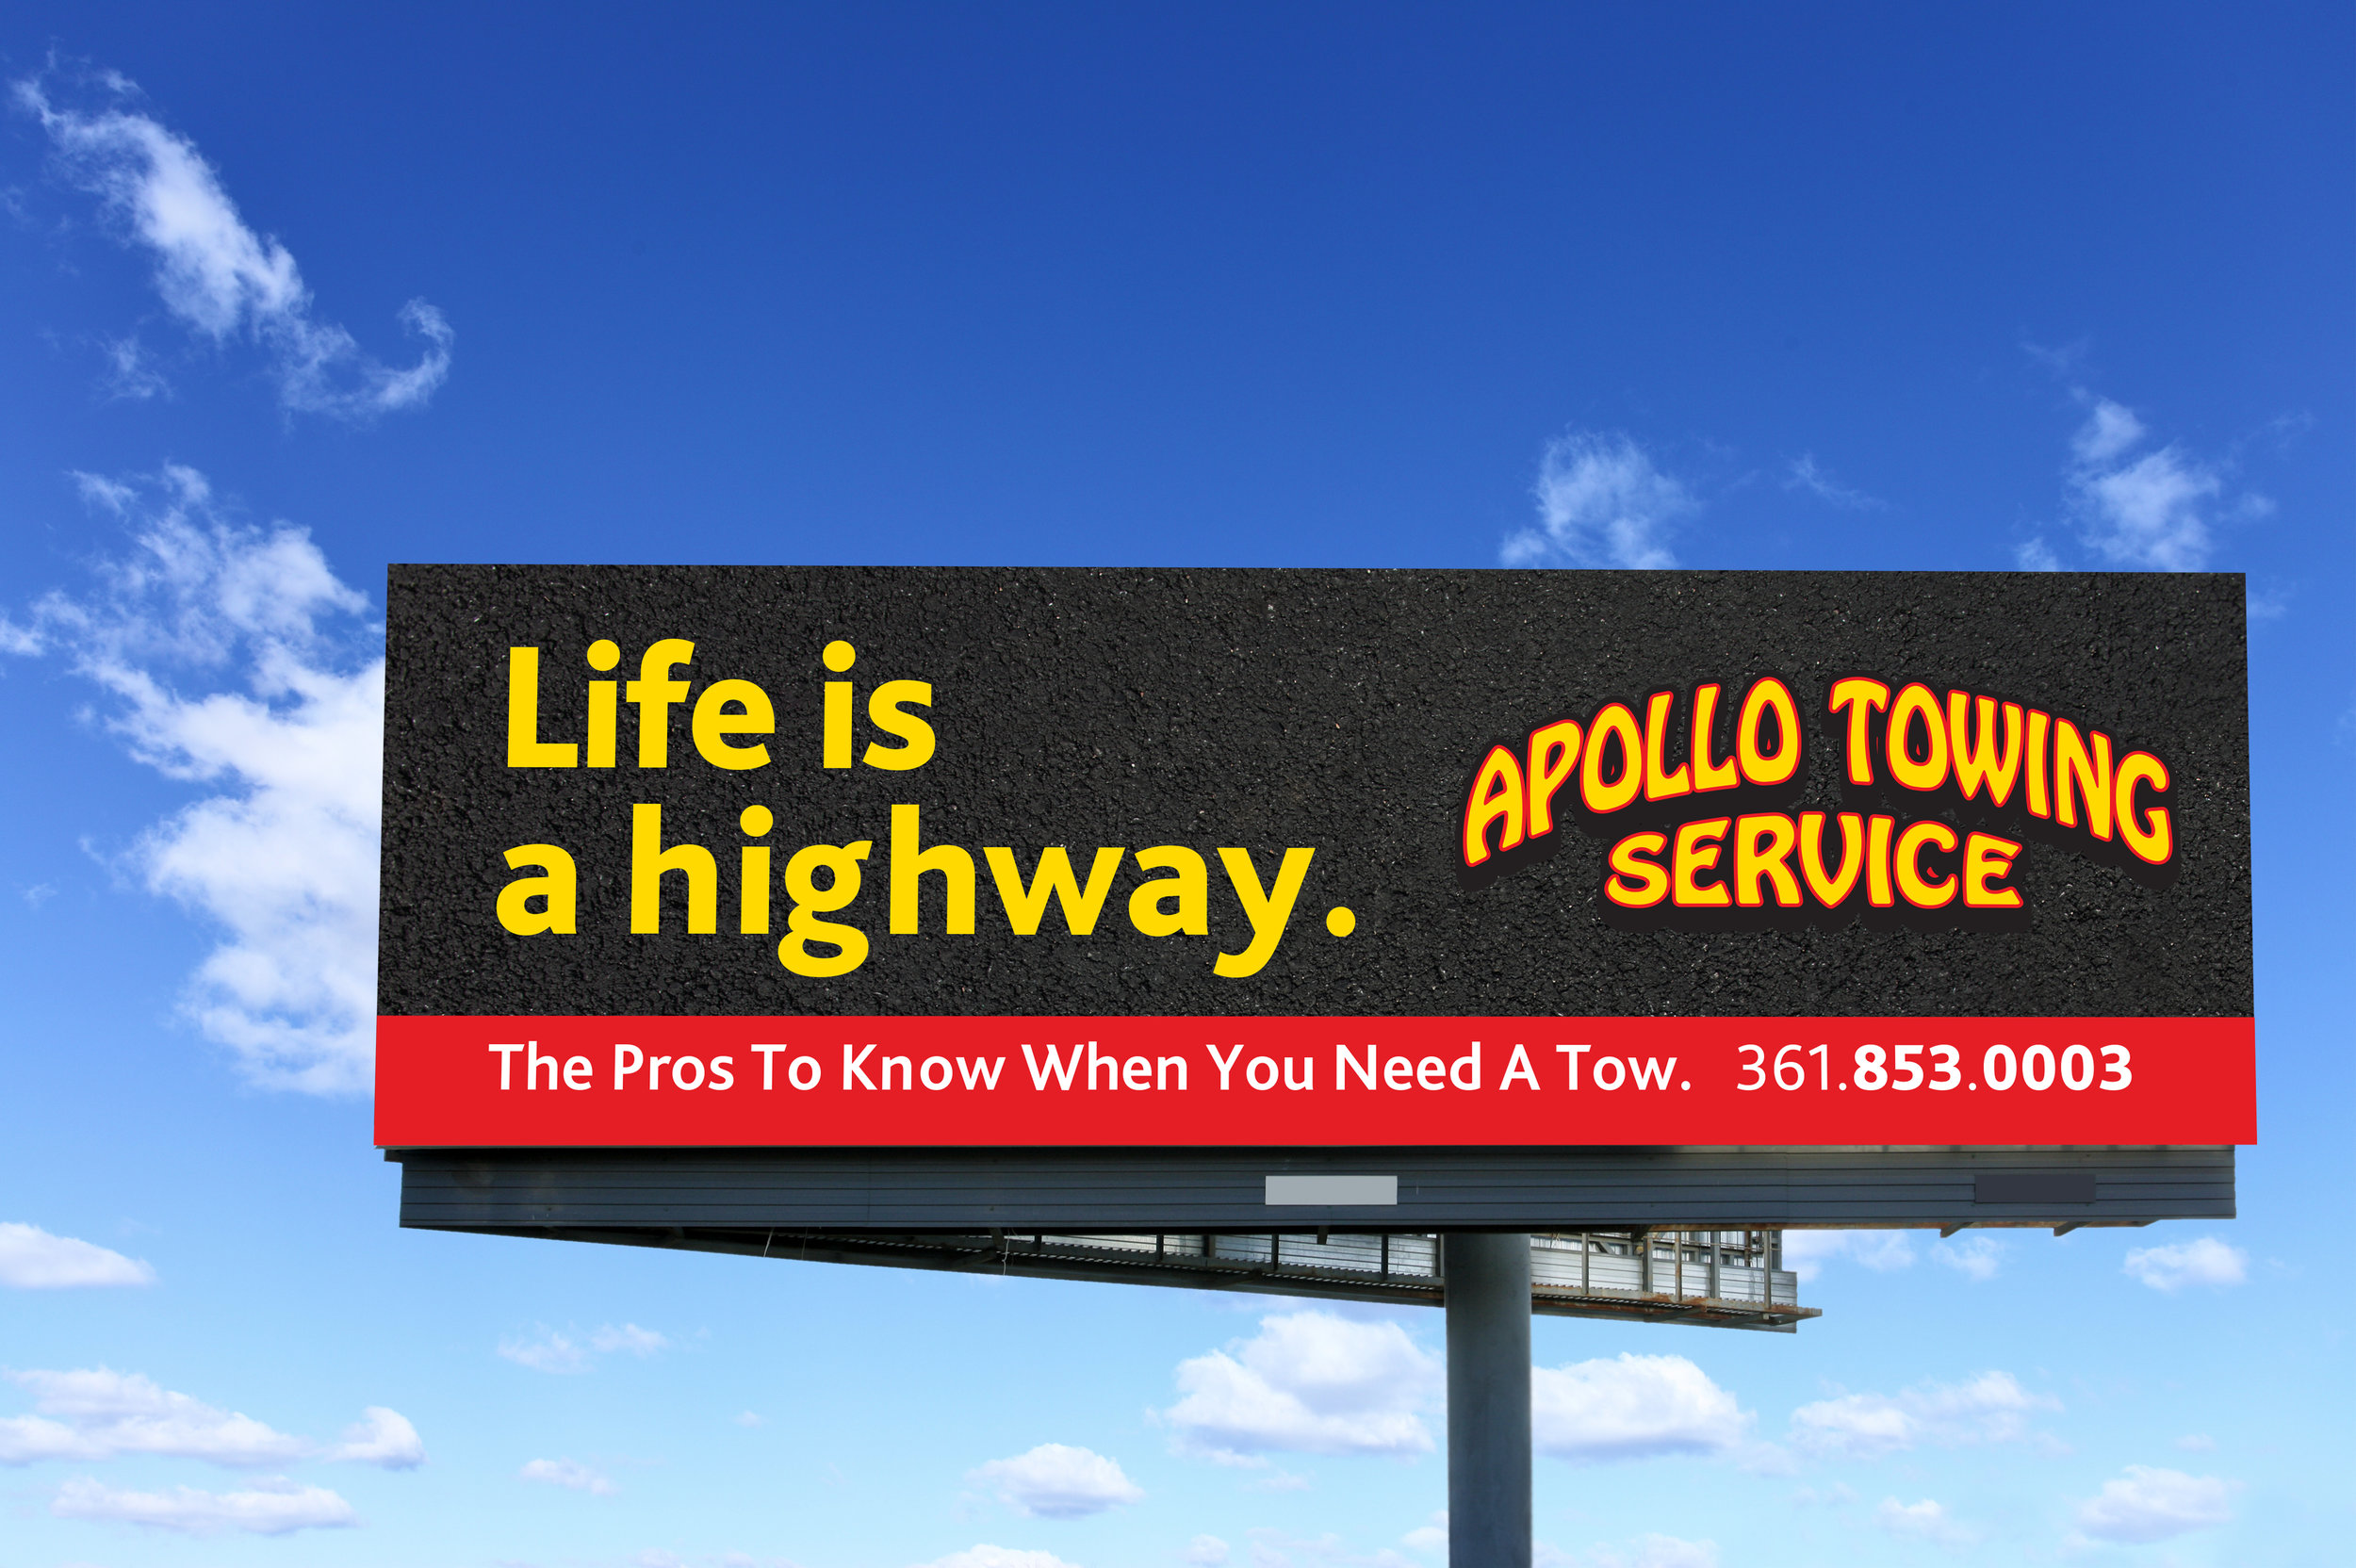 Apollo_LifeIsaHighway_BB.jpg